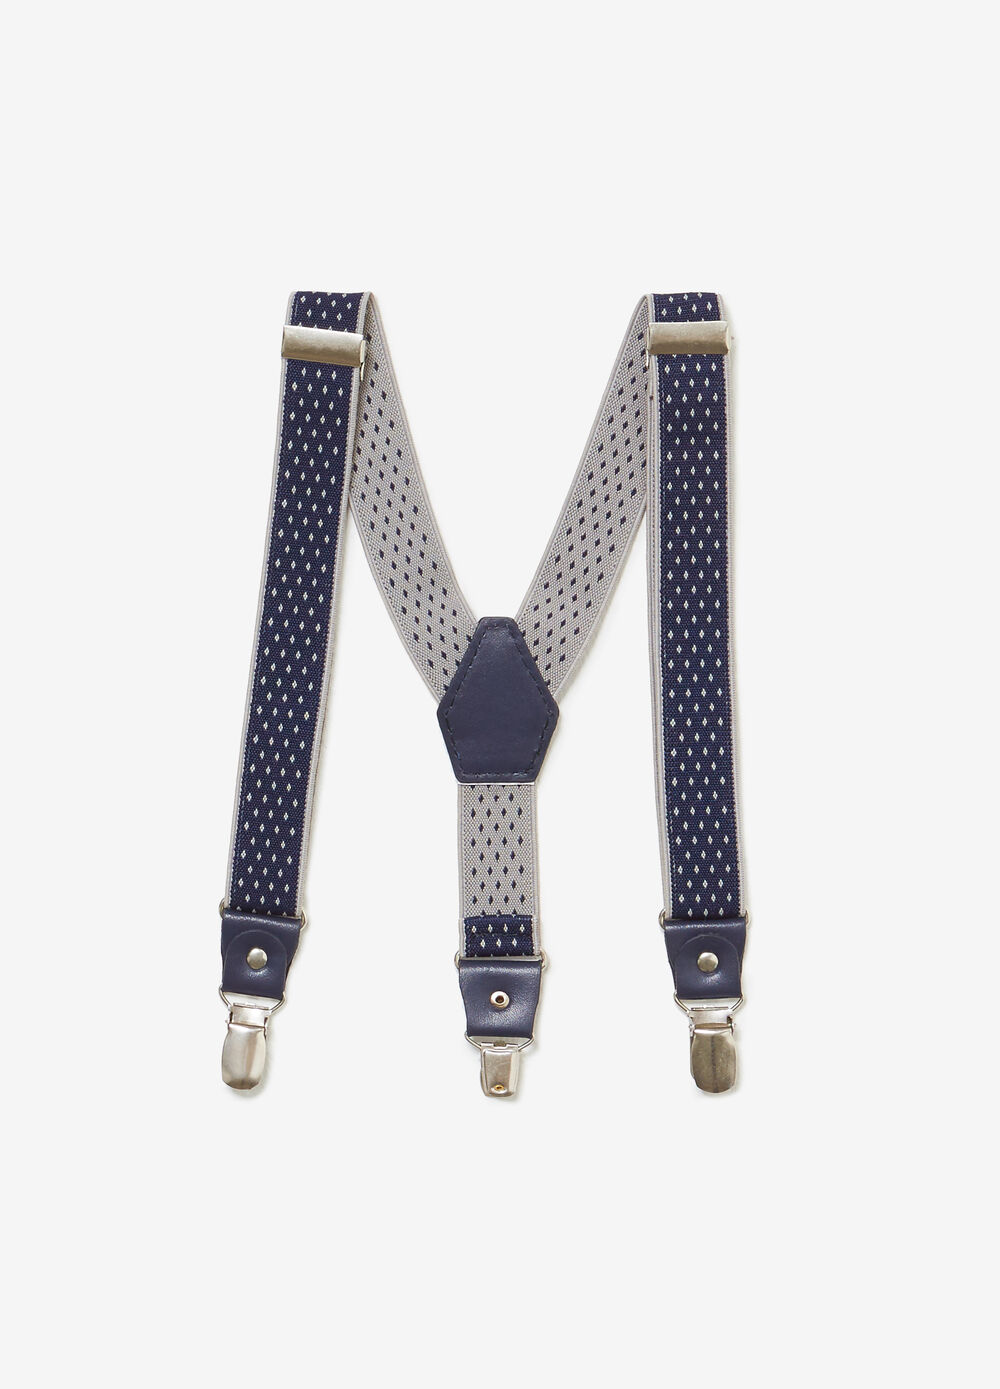 Adjustable braces with micro pattern.